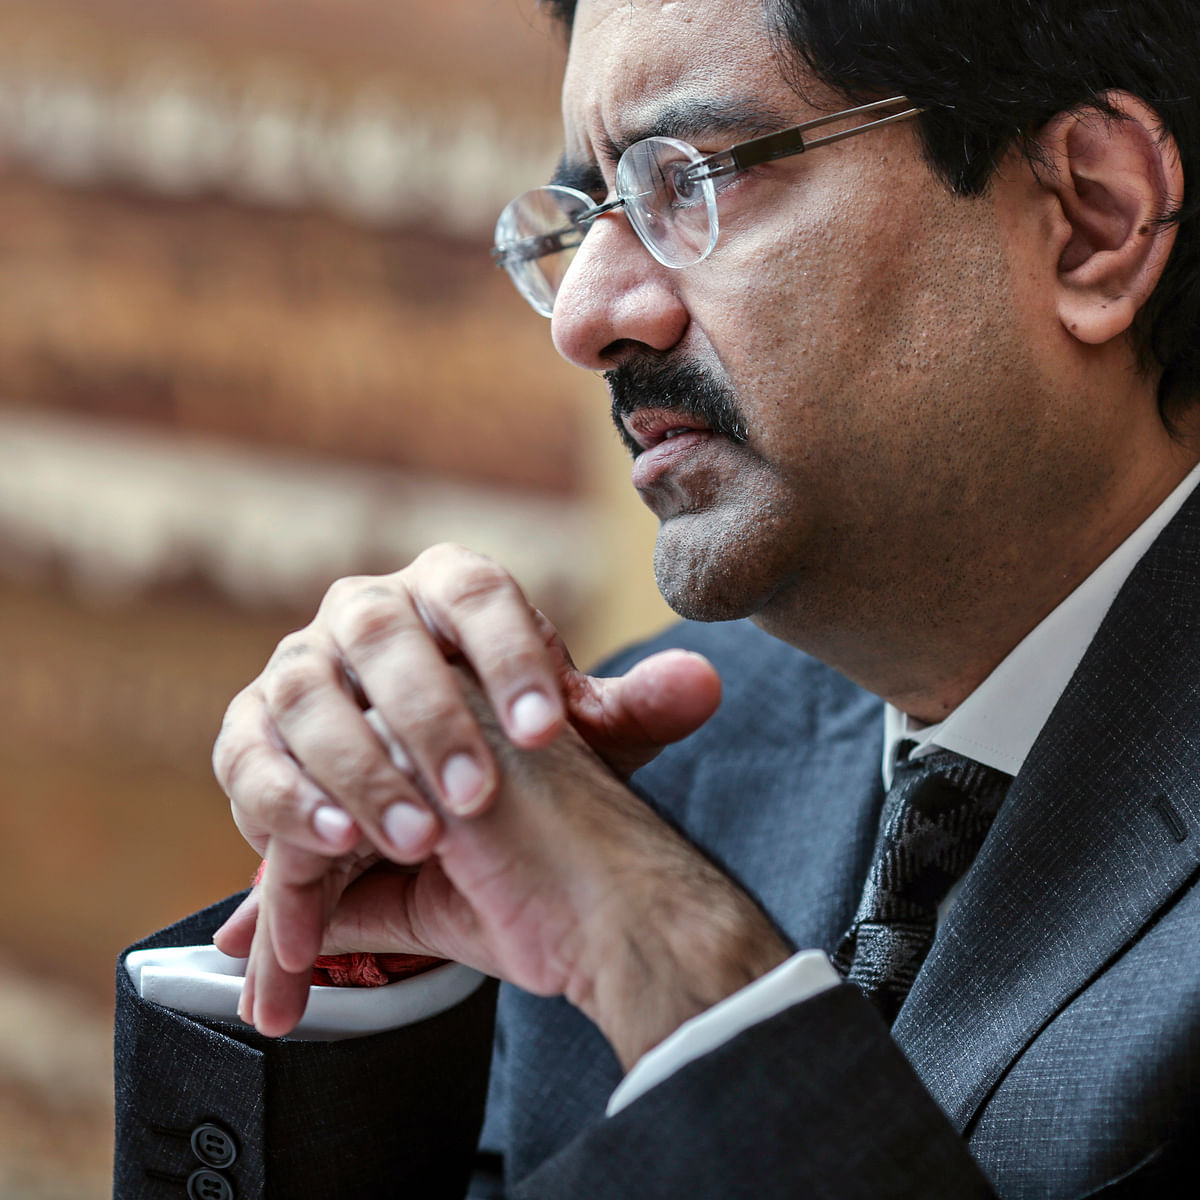 Birla Offers To Give Up Vodafone Idea Stake Amid Worsening Financials